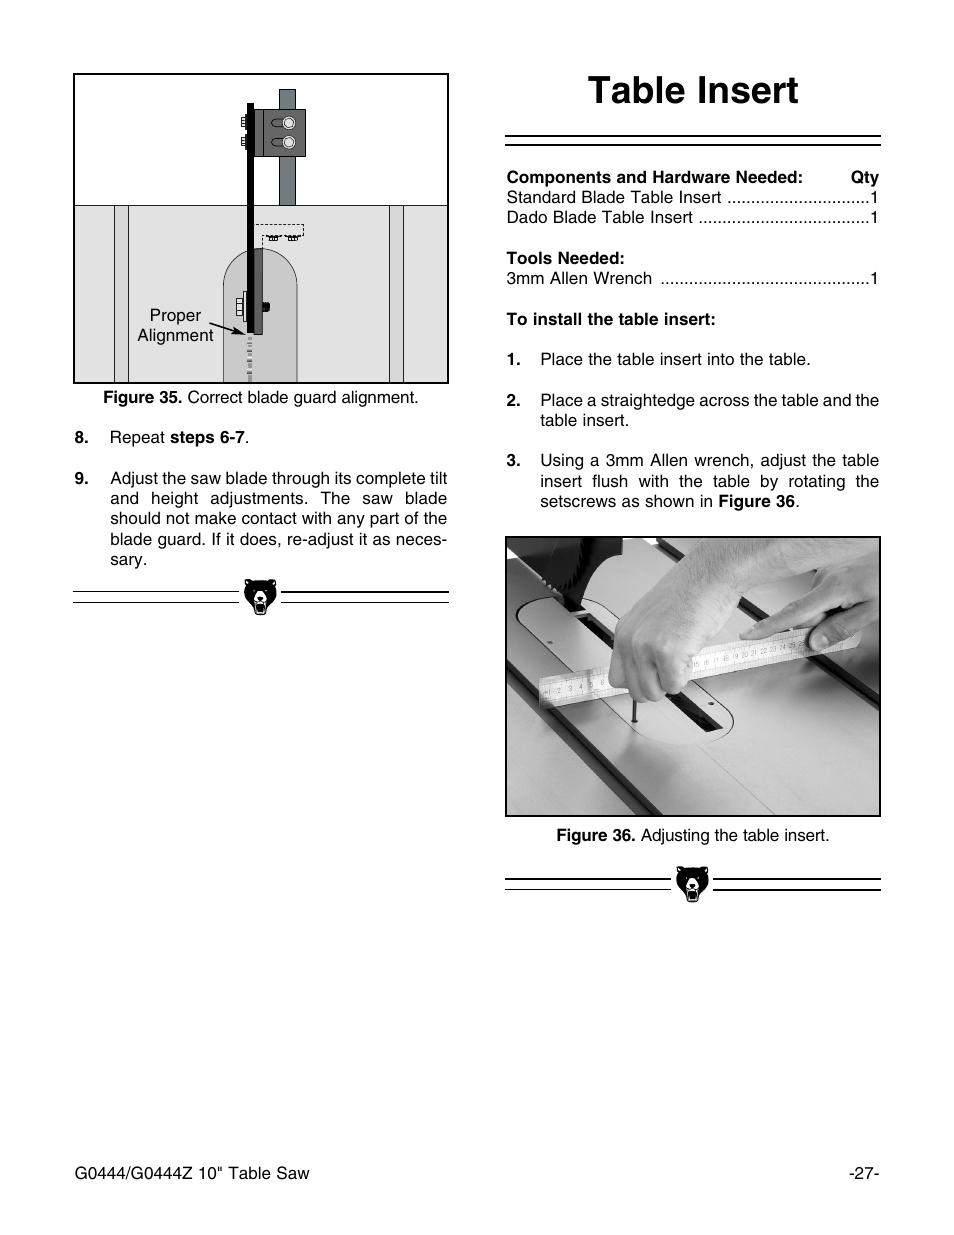 table insert grizzly g0444 user manual page 29 64 rh manualsdir com